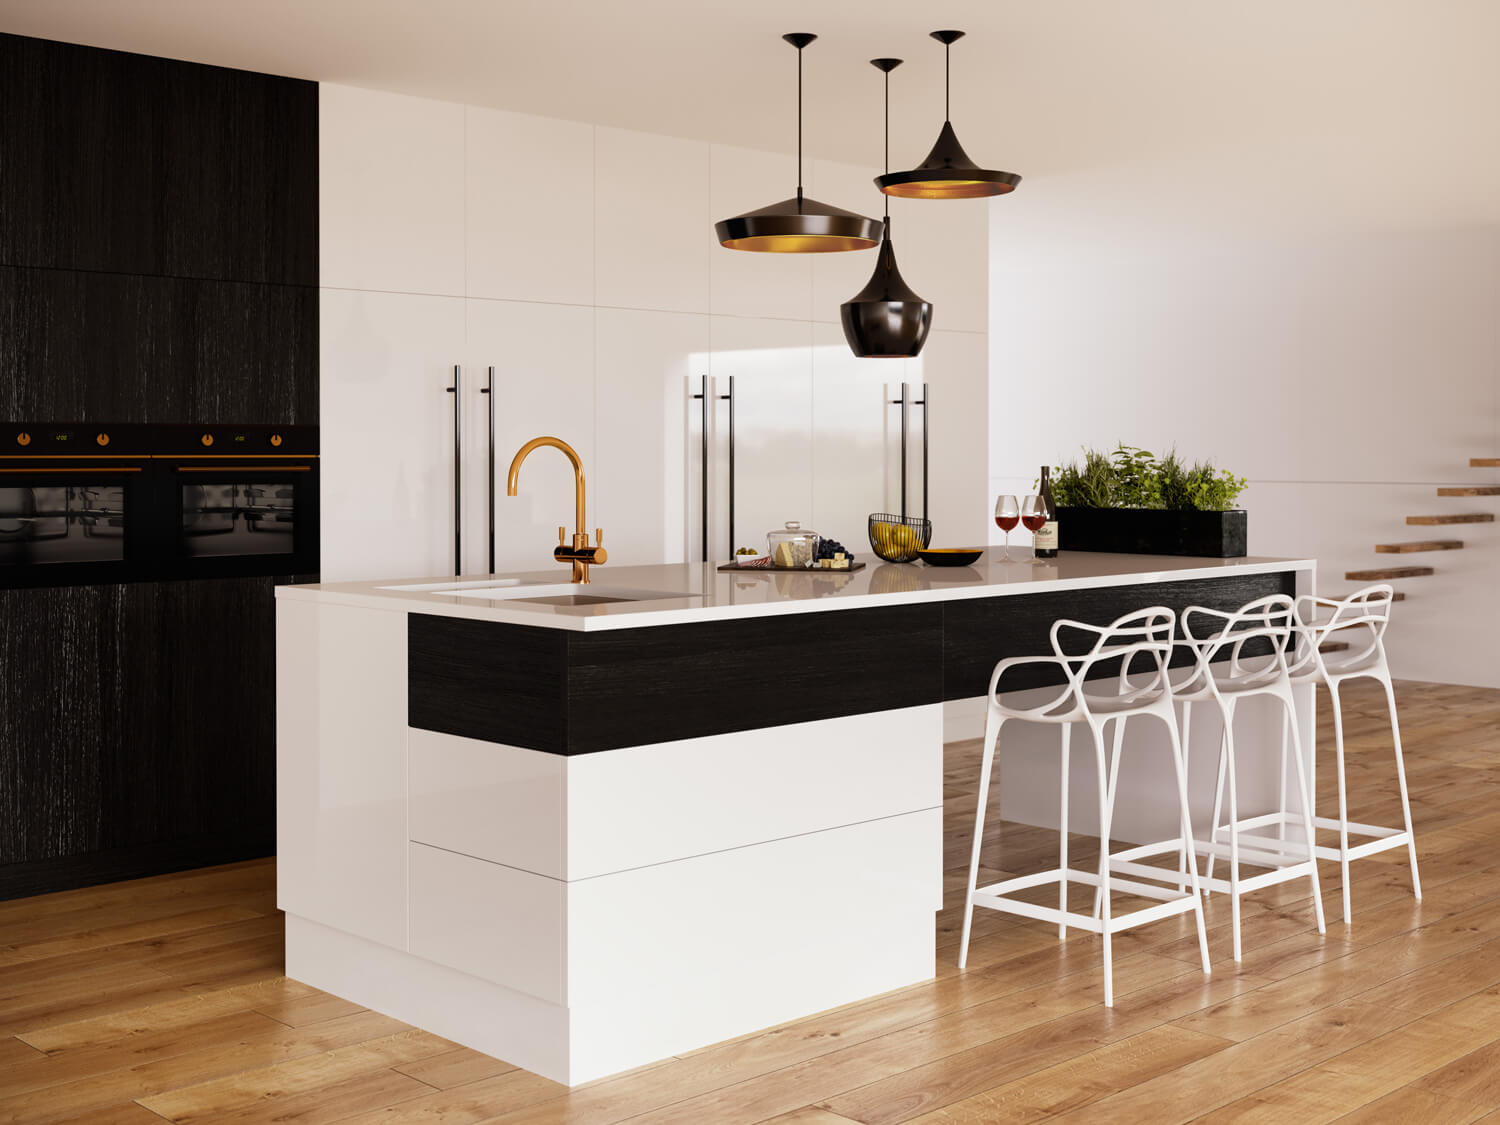 Beautiful modern kitchen 3D rendering showing tap product CGI - sleek black and white design with polished wooden floors, gold tones and taps to the centre